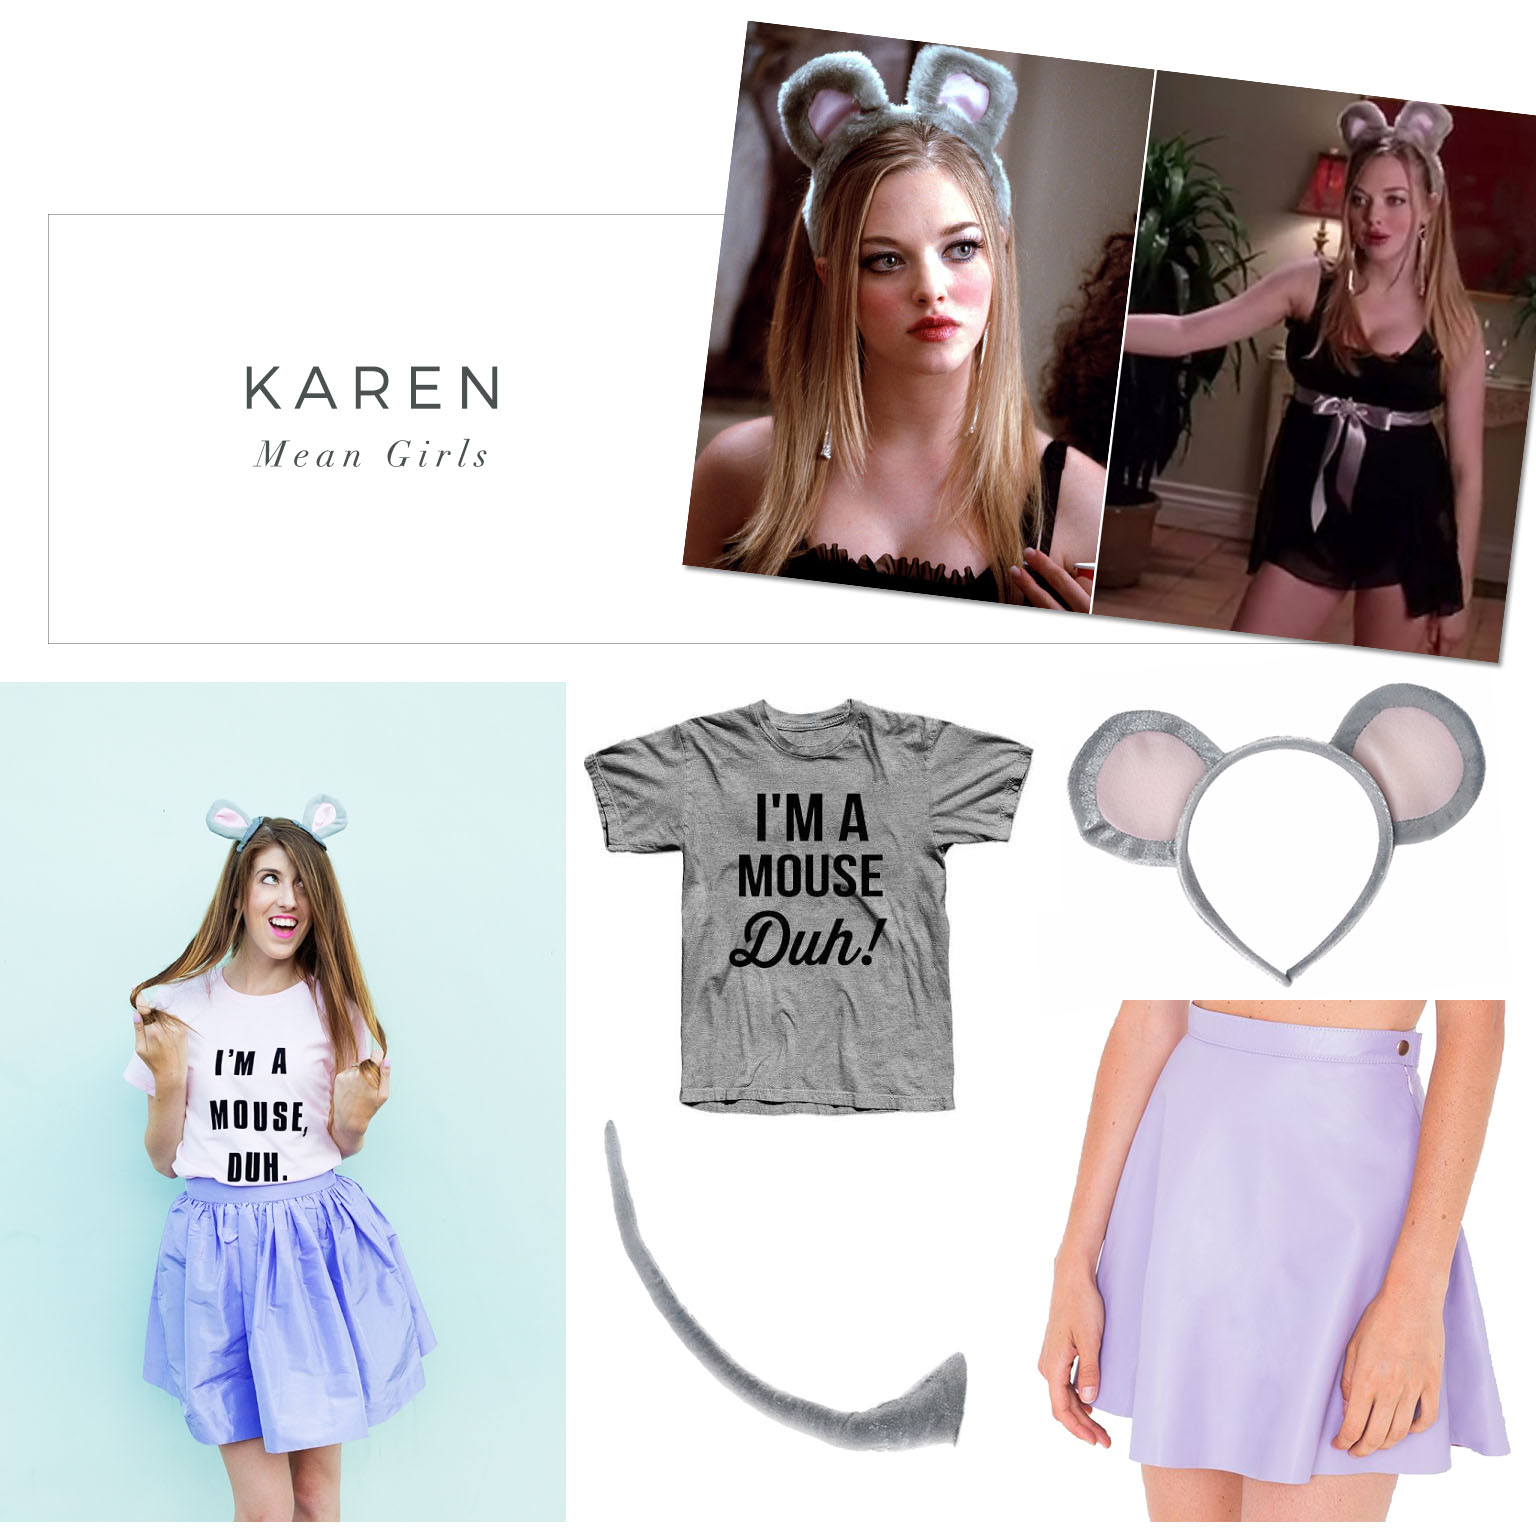 Karen mean girls halloween costume